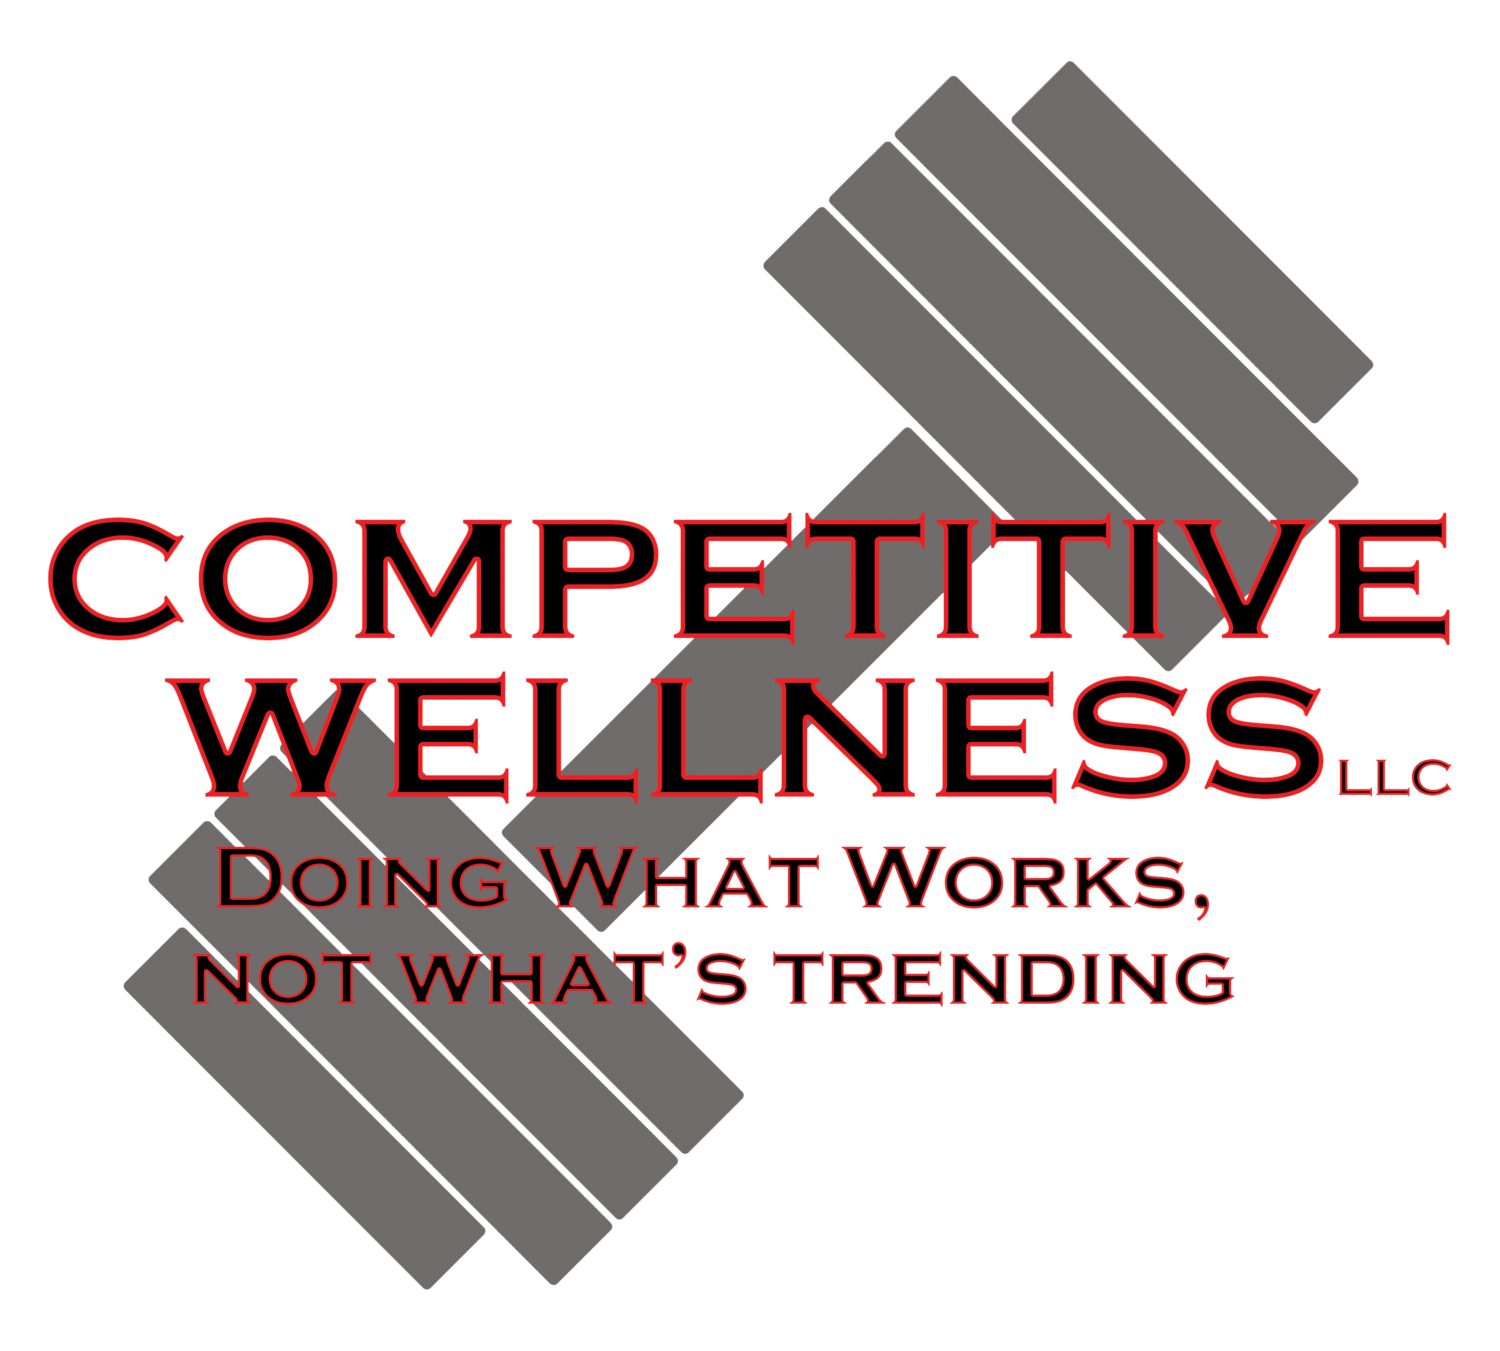 Competitive Wellness